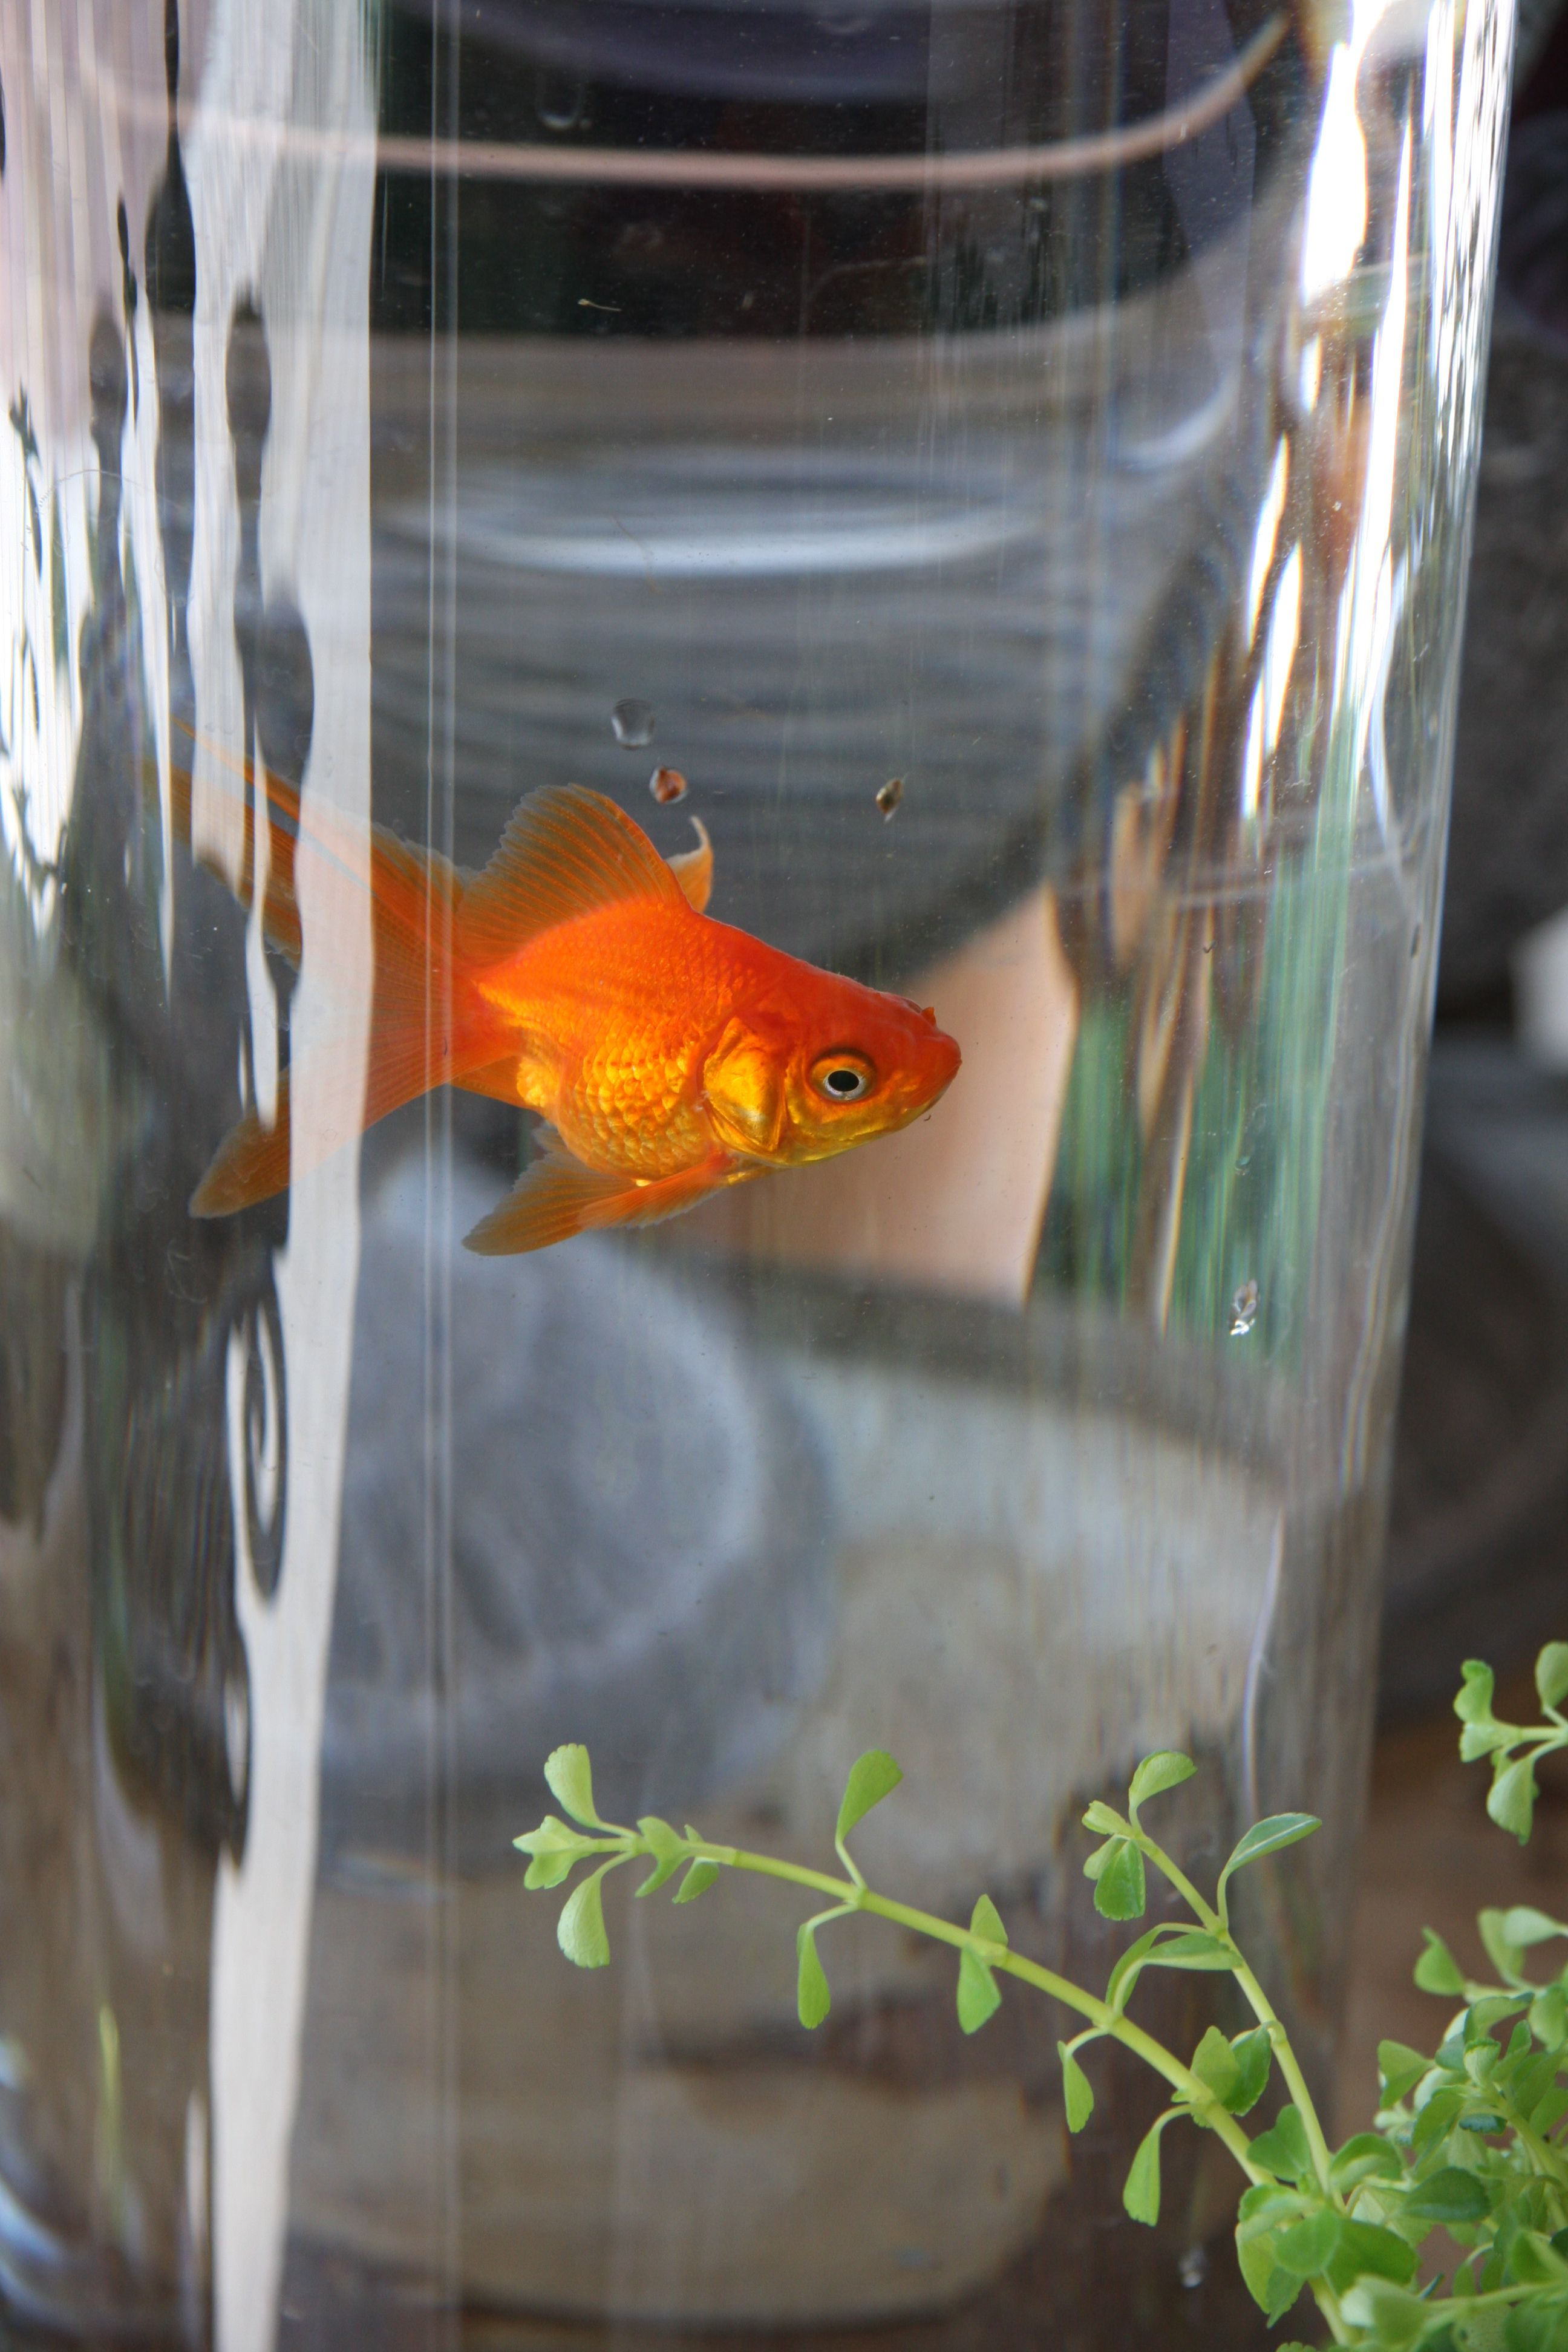 myth gold fish only grow depend the sizes of tank or bowls False